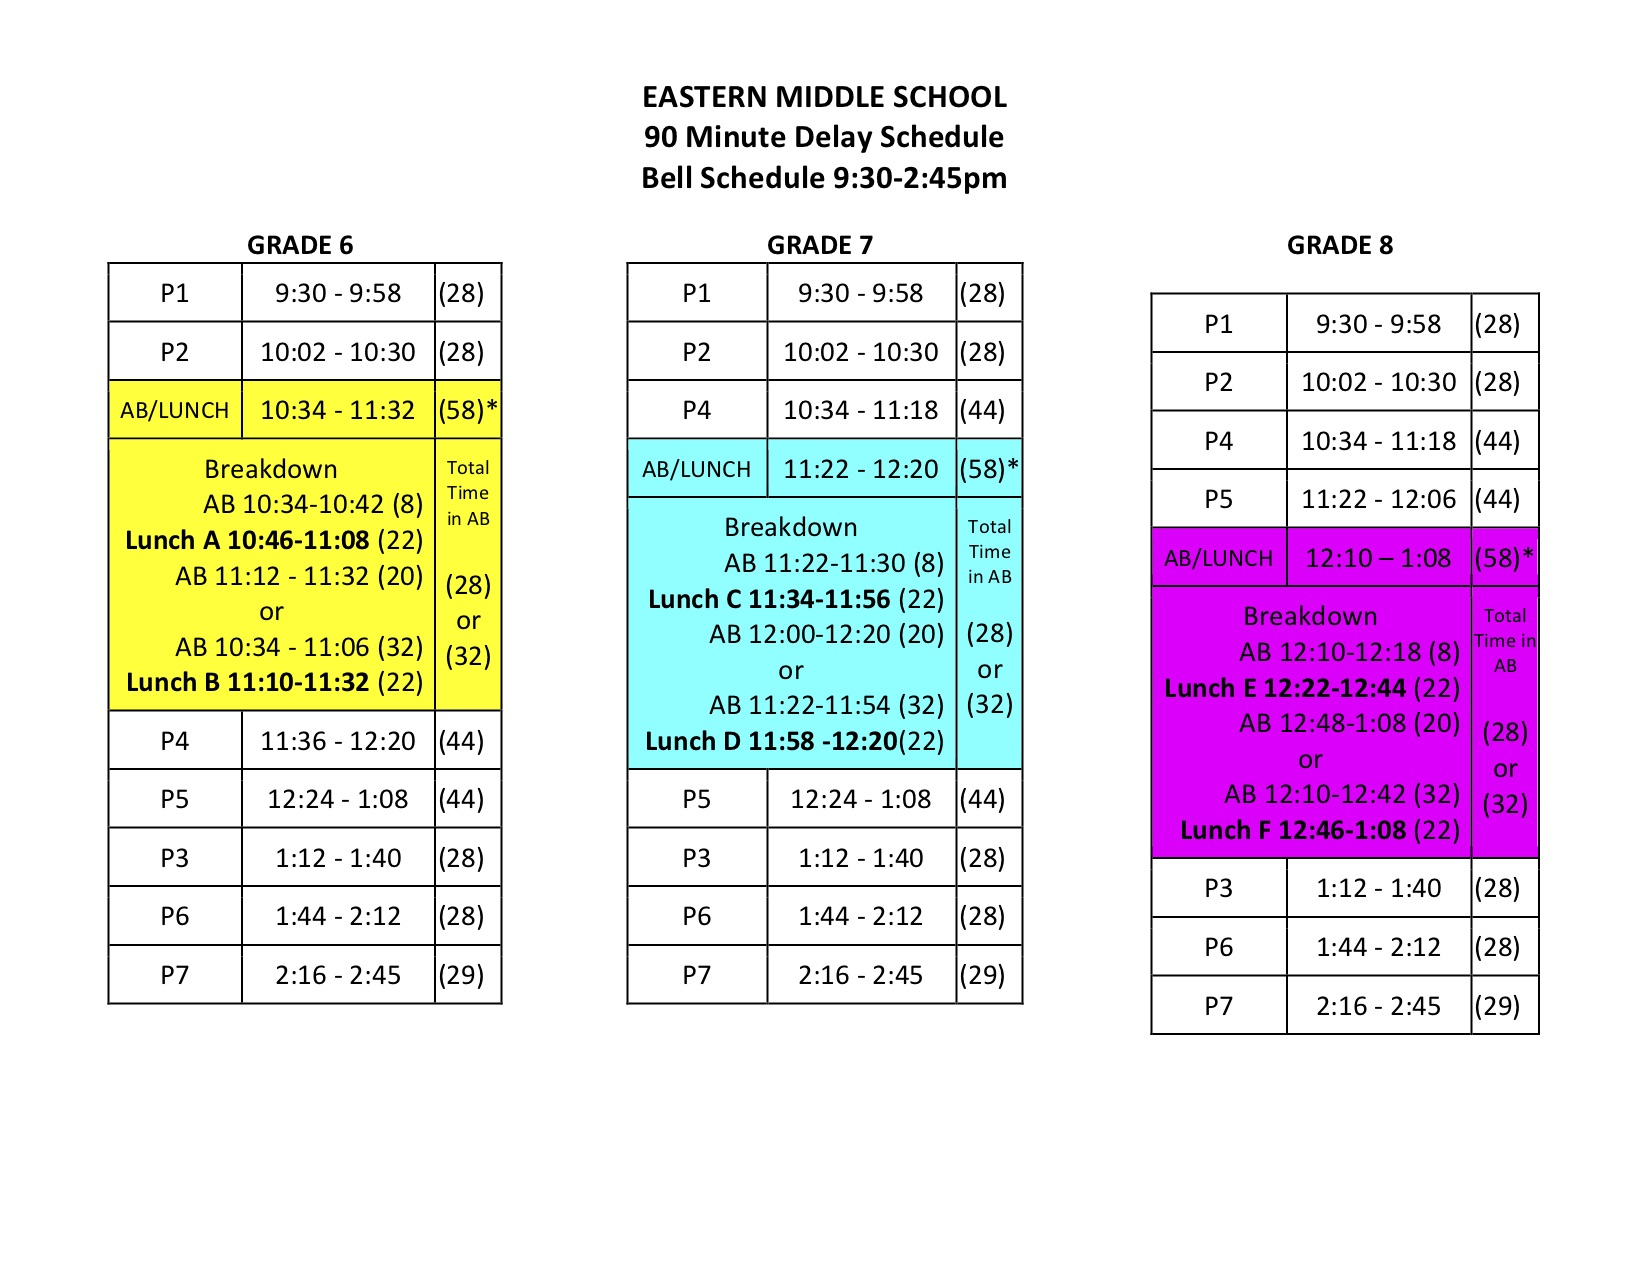 EMS 2018-19 90 Minute Delay Schedule